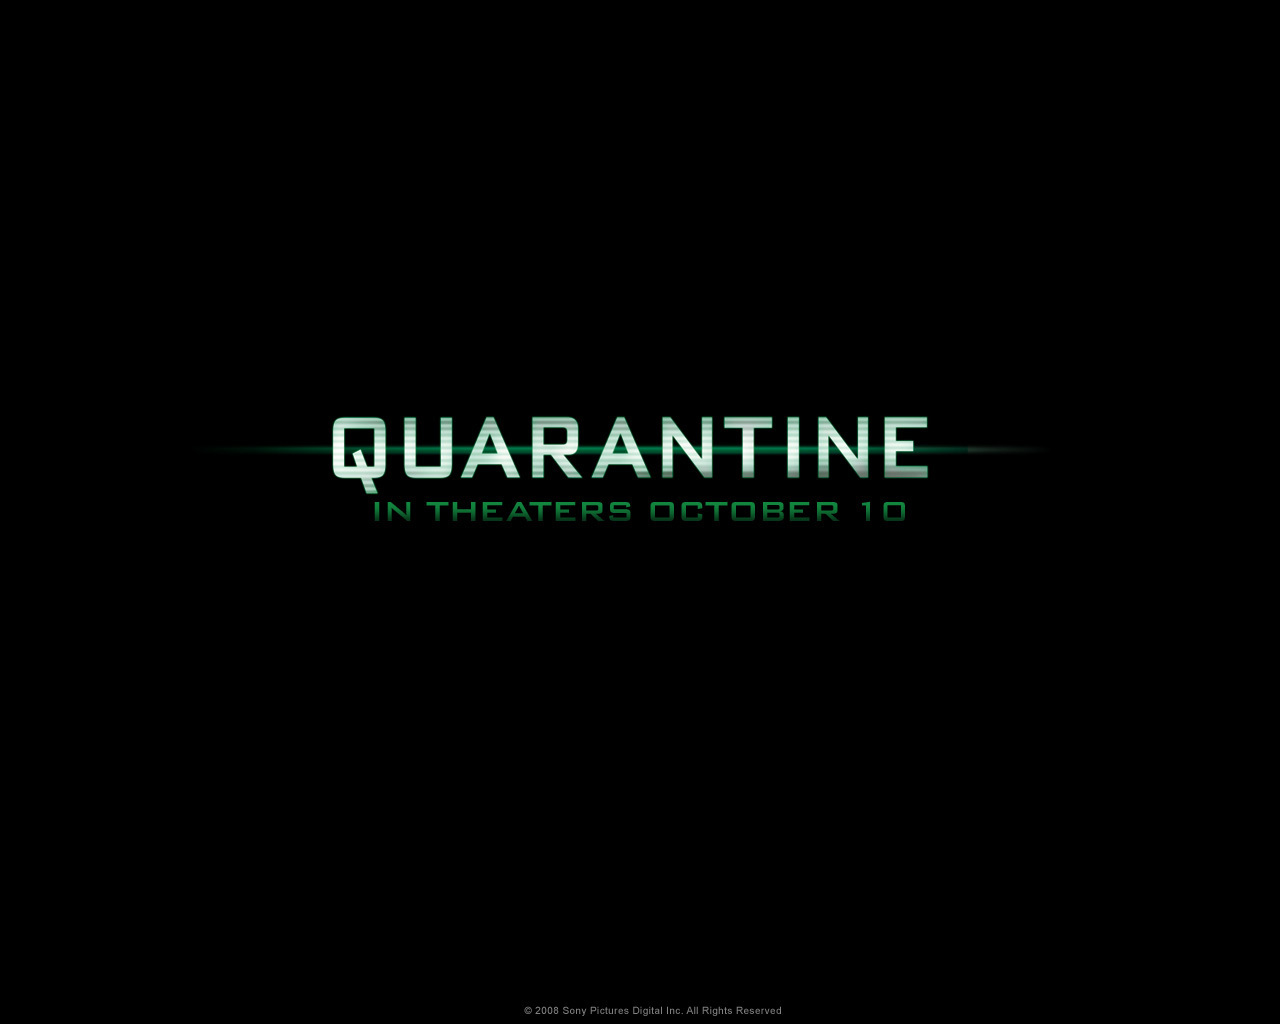 quarantine horror movies wallpaper 7084624 fanpop